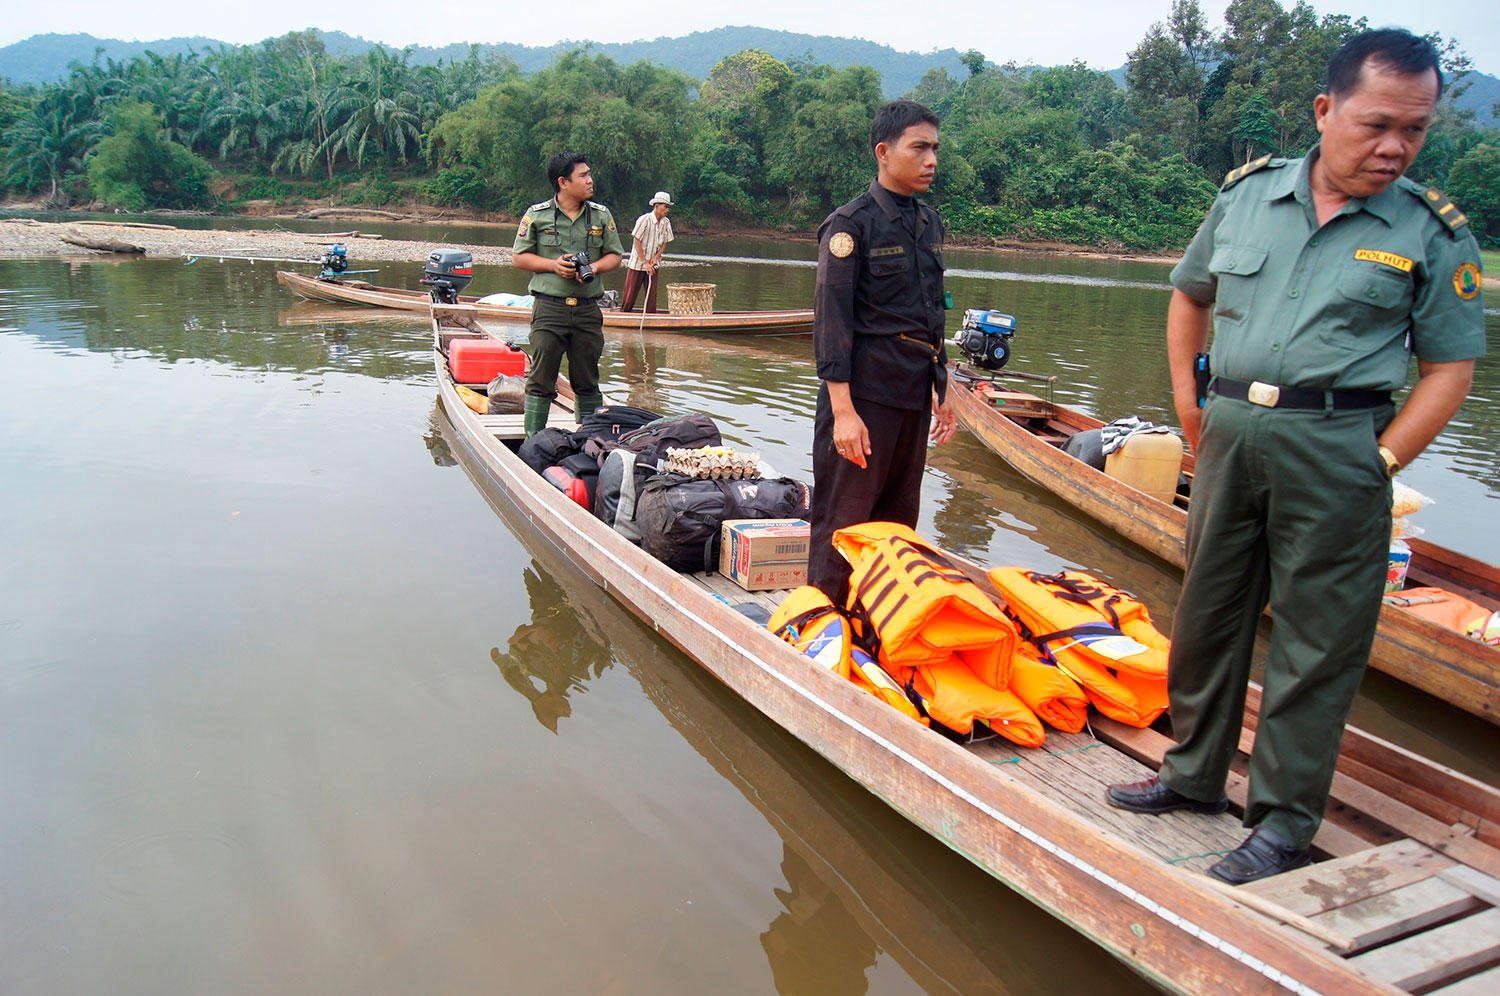 parks_rusli_with_tiger_protection_unit_1500w.jpg